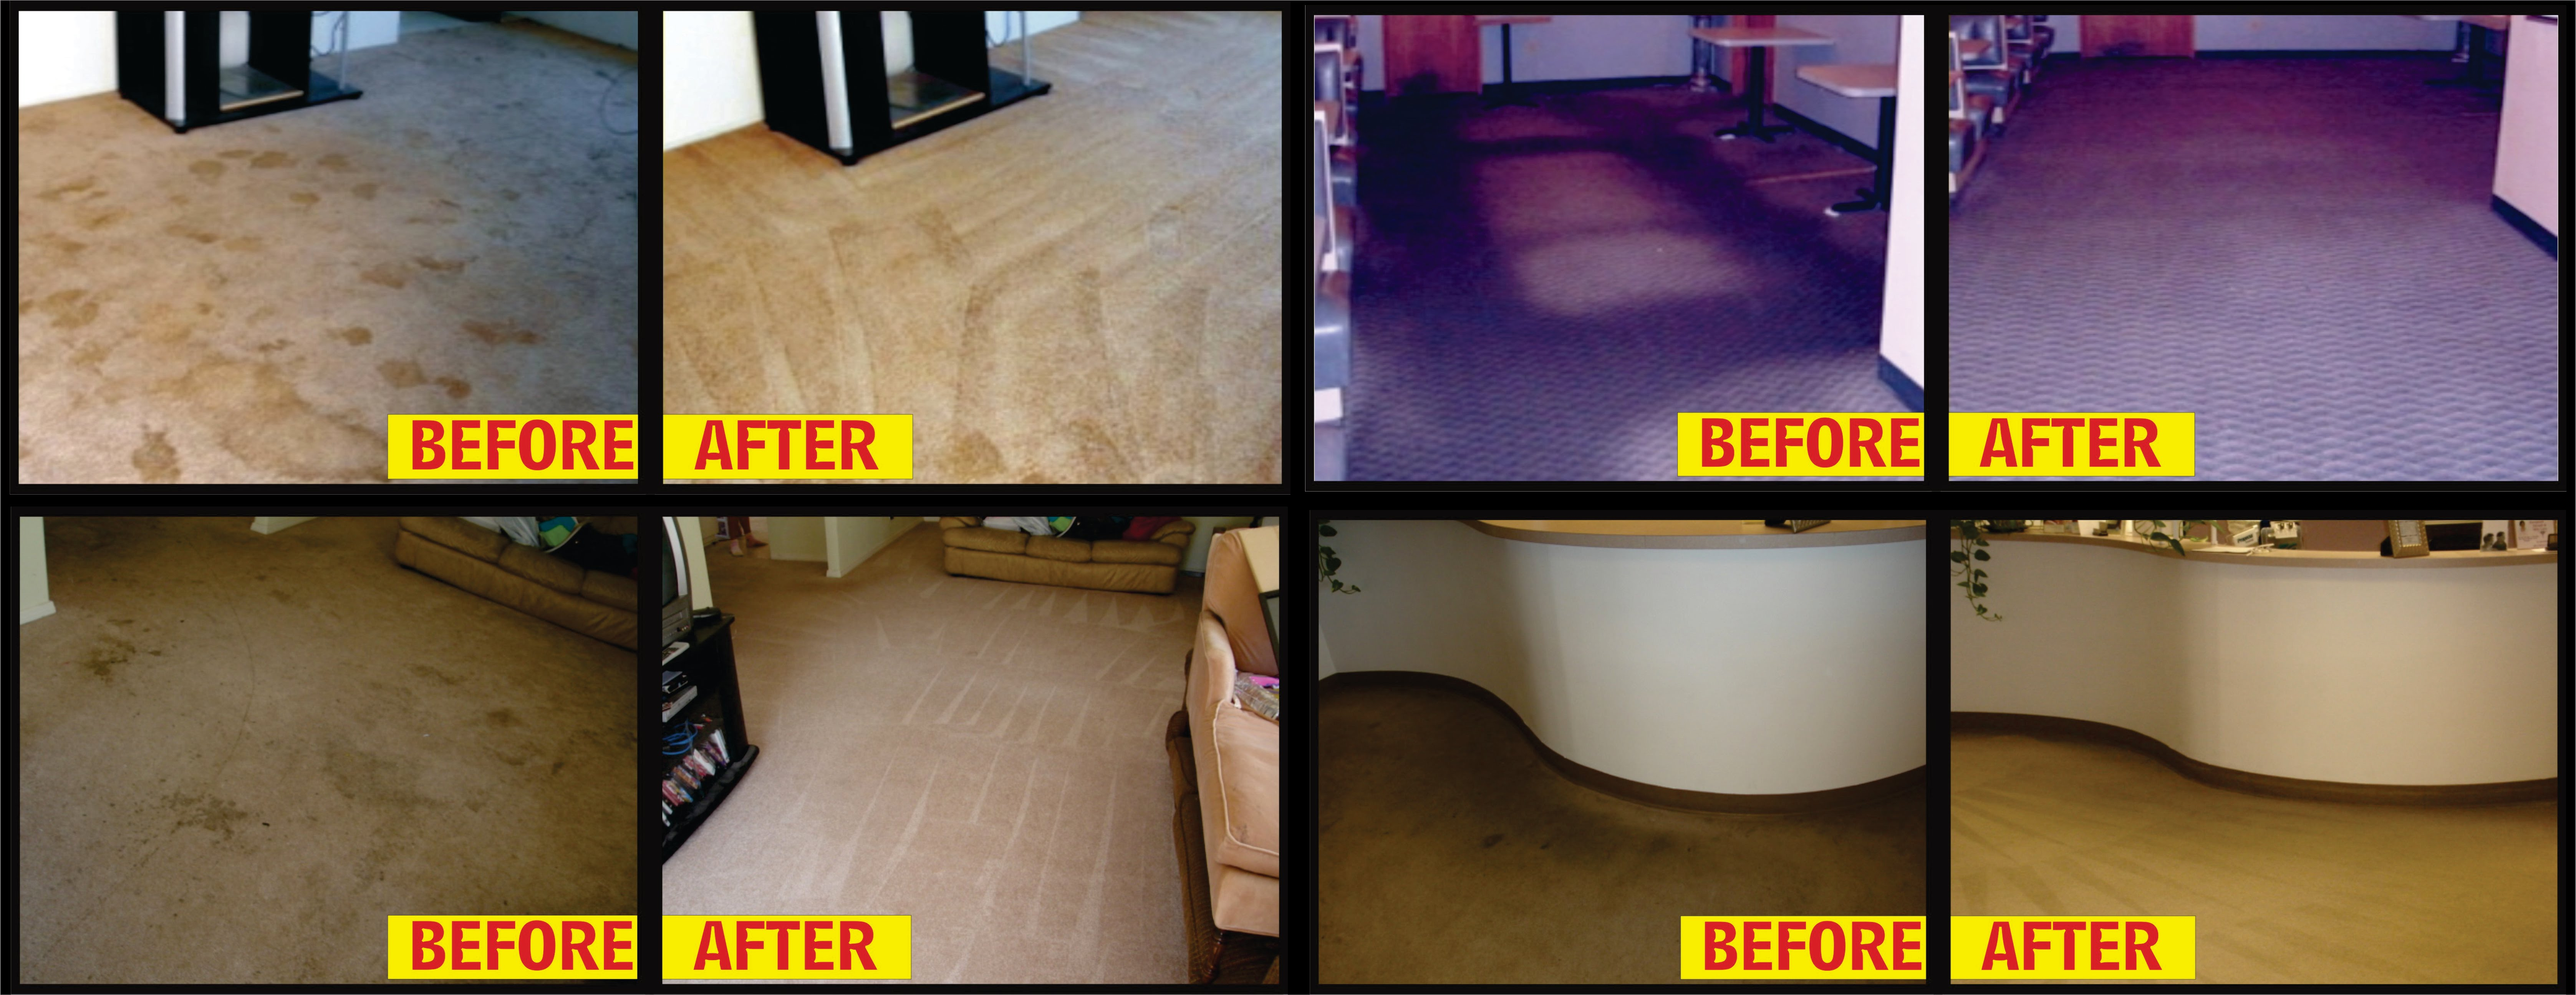 Carpet Cleaning Tile Grout Cleaning Carpet Cleaner Linoleum - Best steam cleaning system